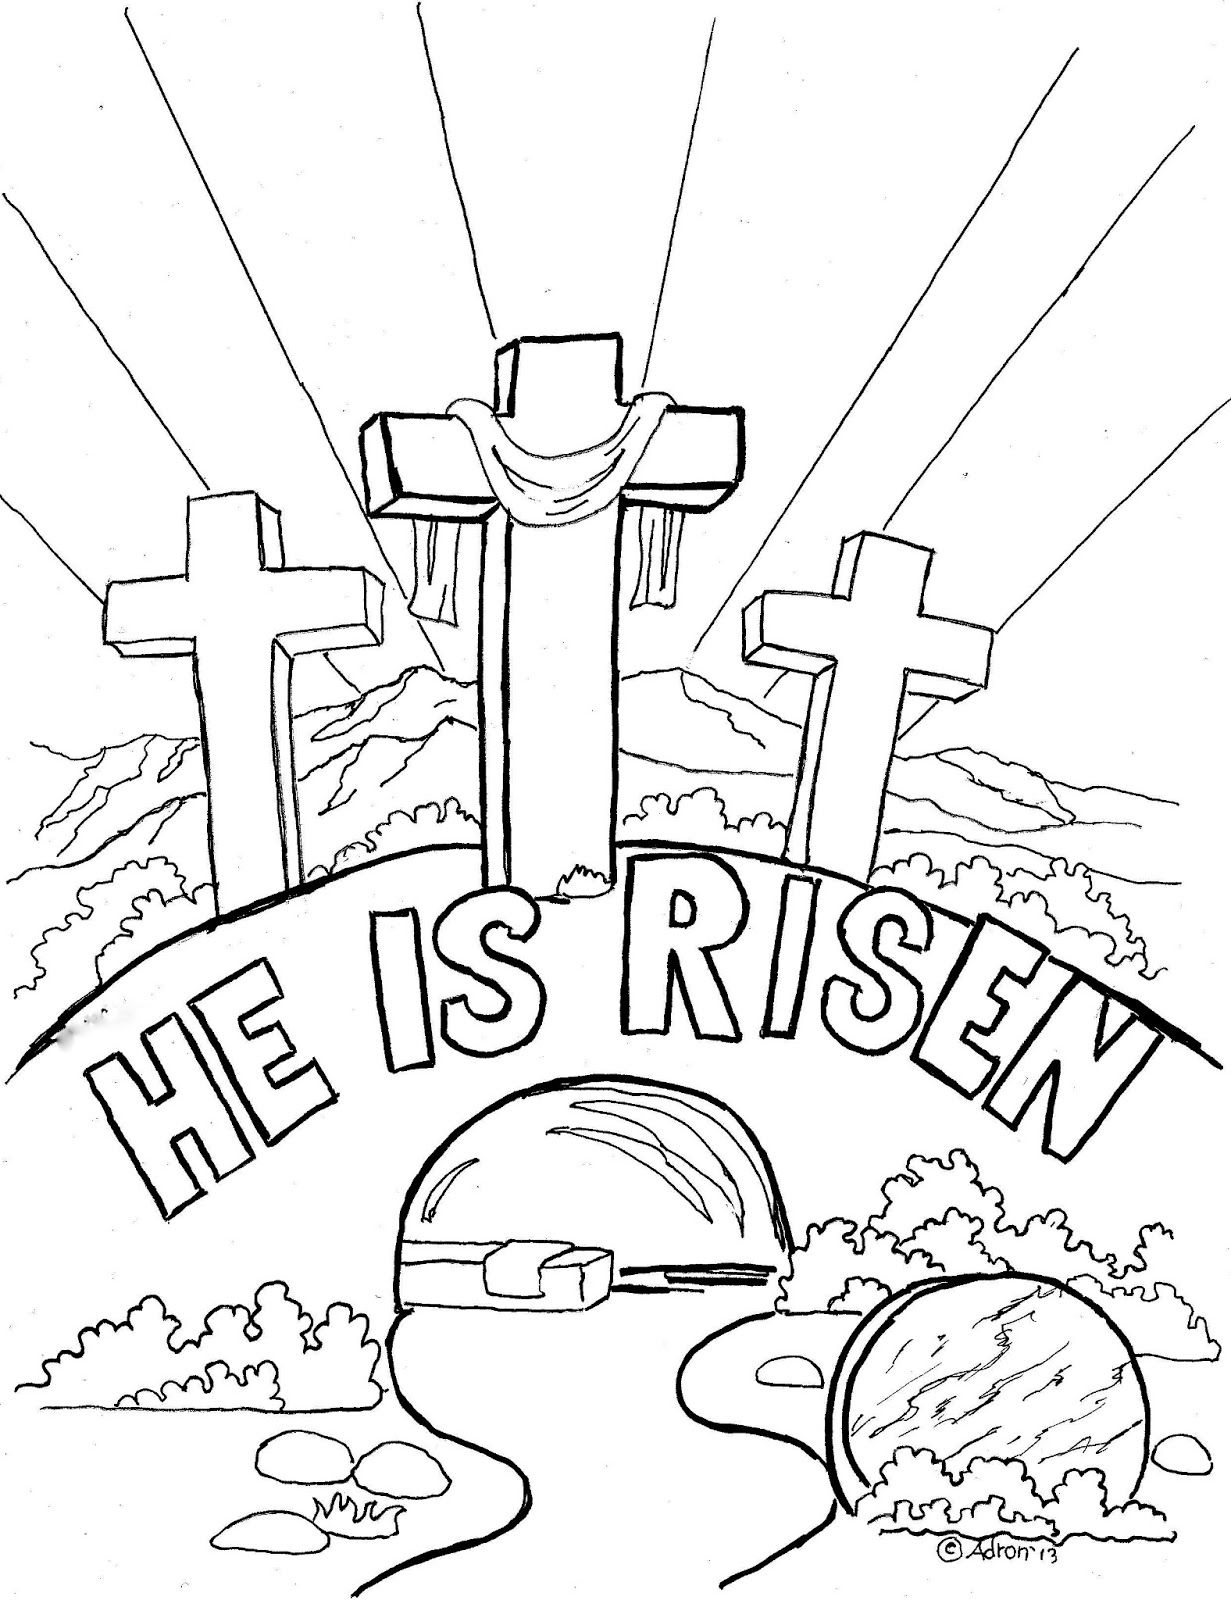 jesus crucifixion coloring pages crucifixion coloring page crucifixion jesus coloring pages